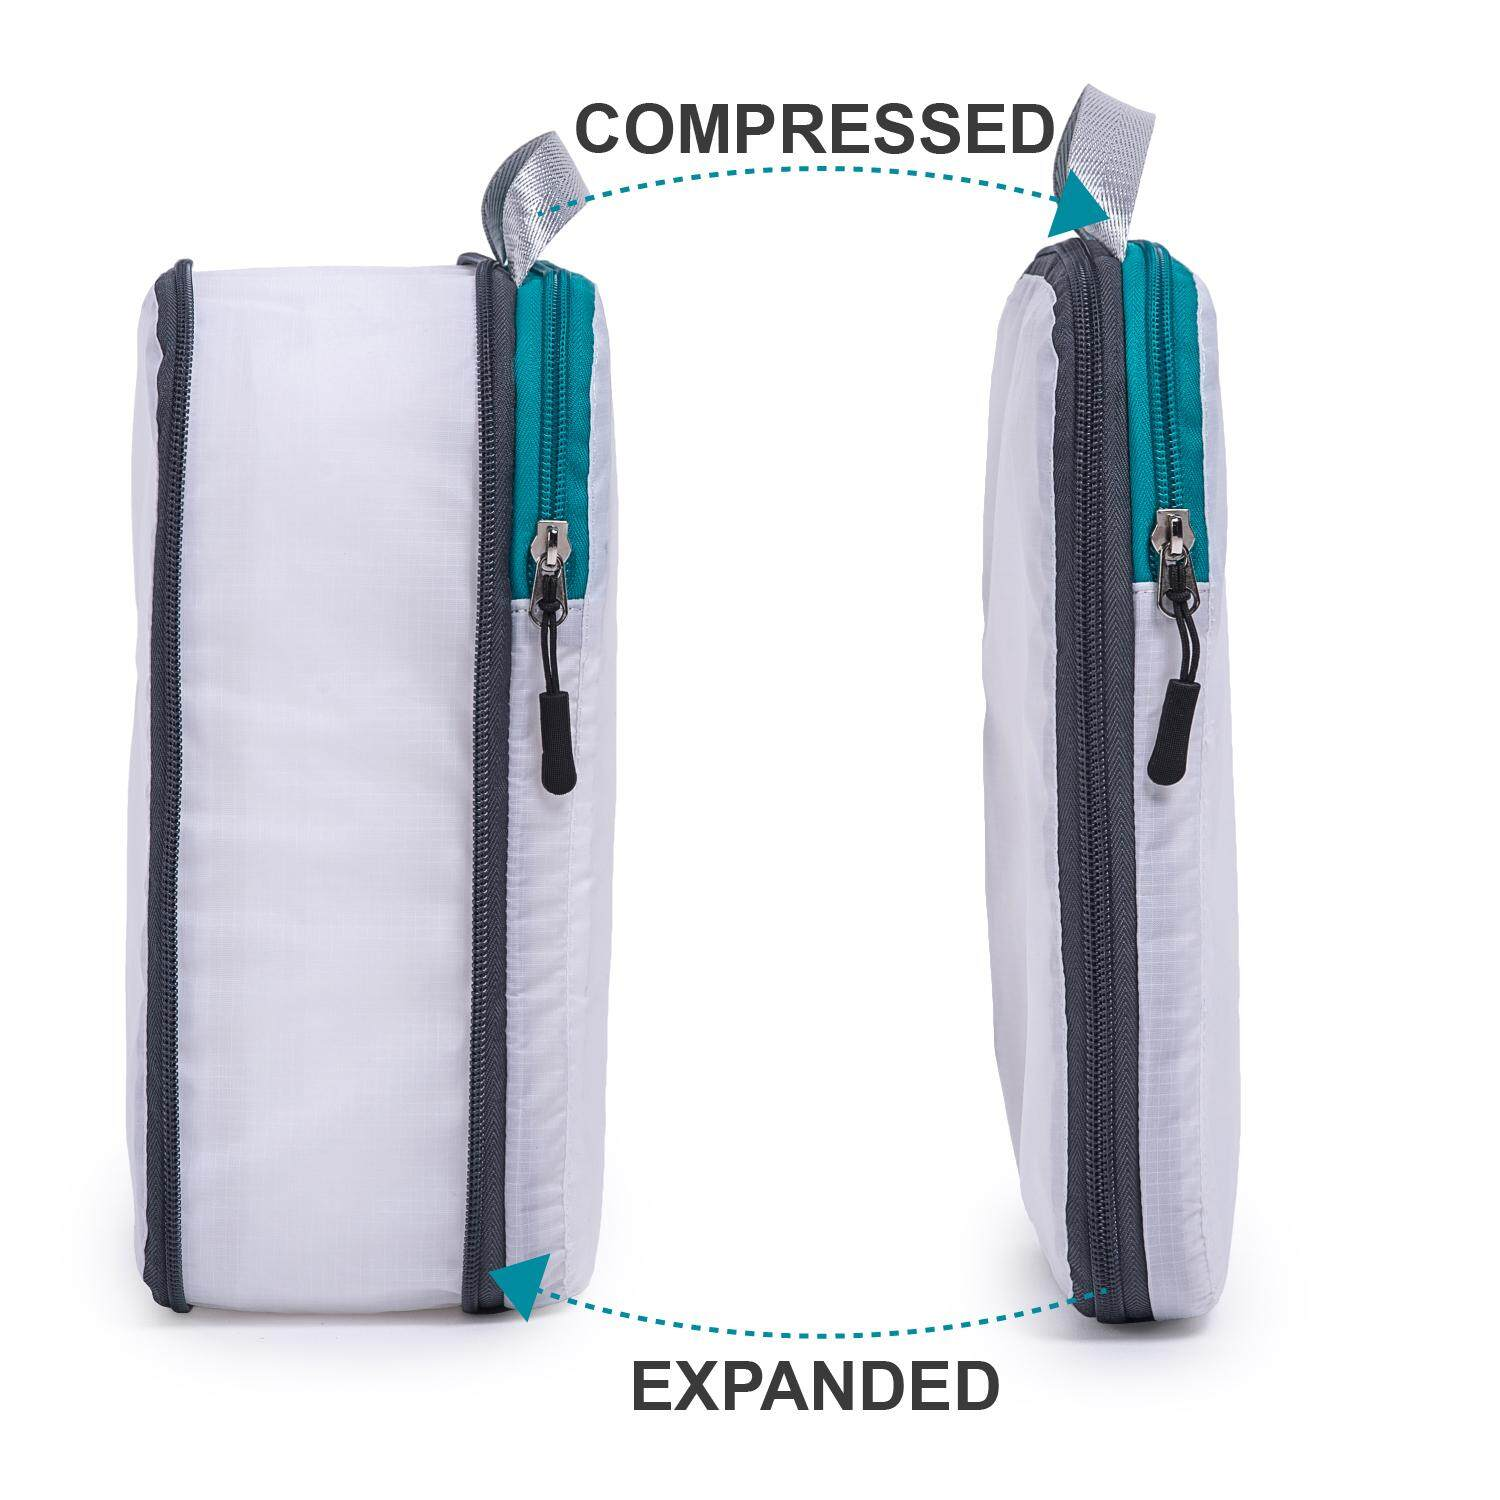 981d5d72d03e Packing Cube Set 3pcs for Travel,Compression Bags Organizer for  Luggage/Backpack